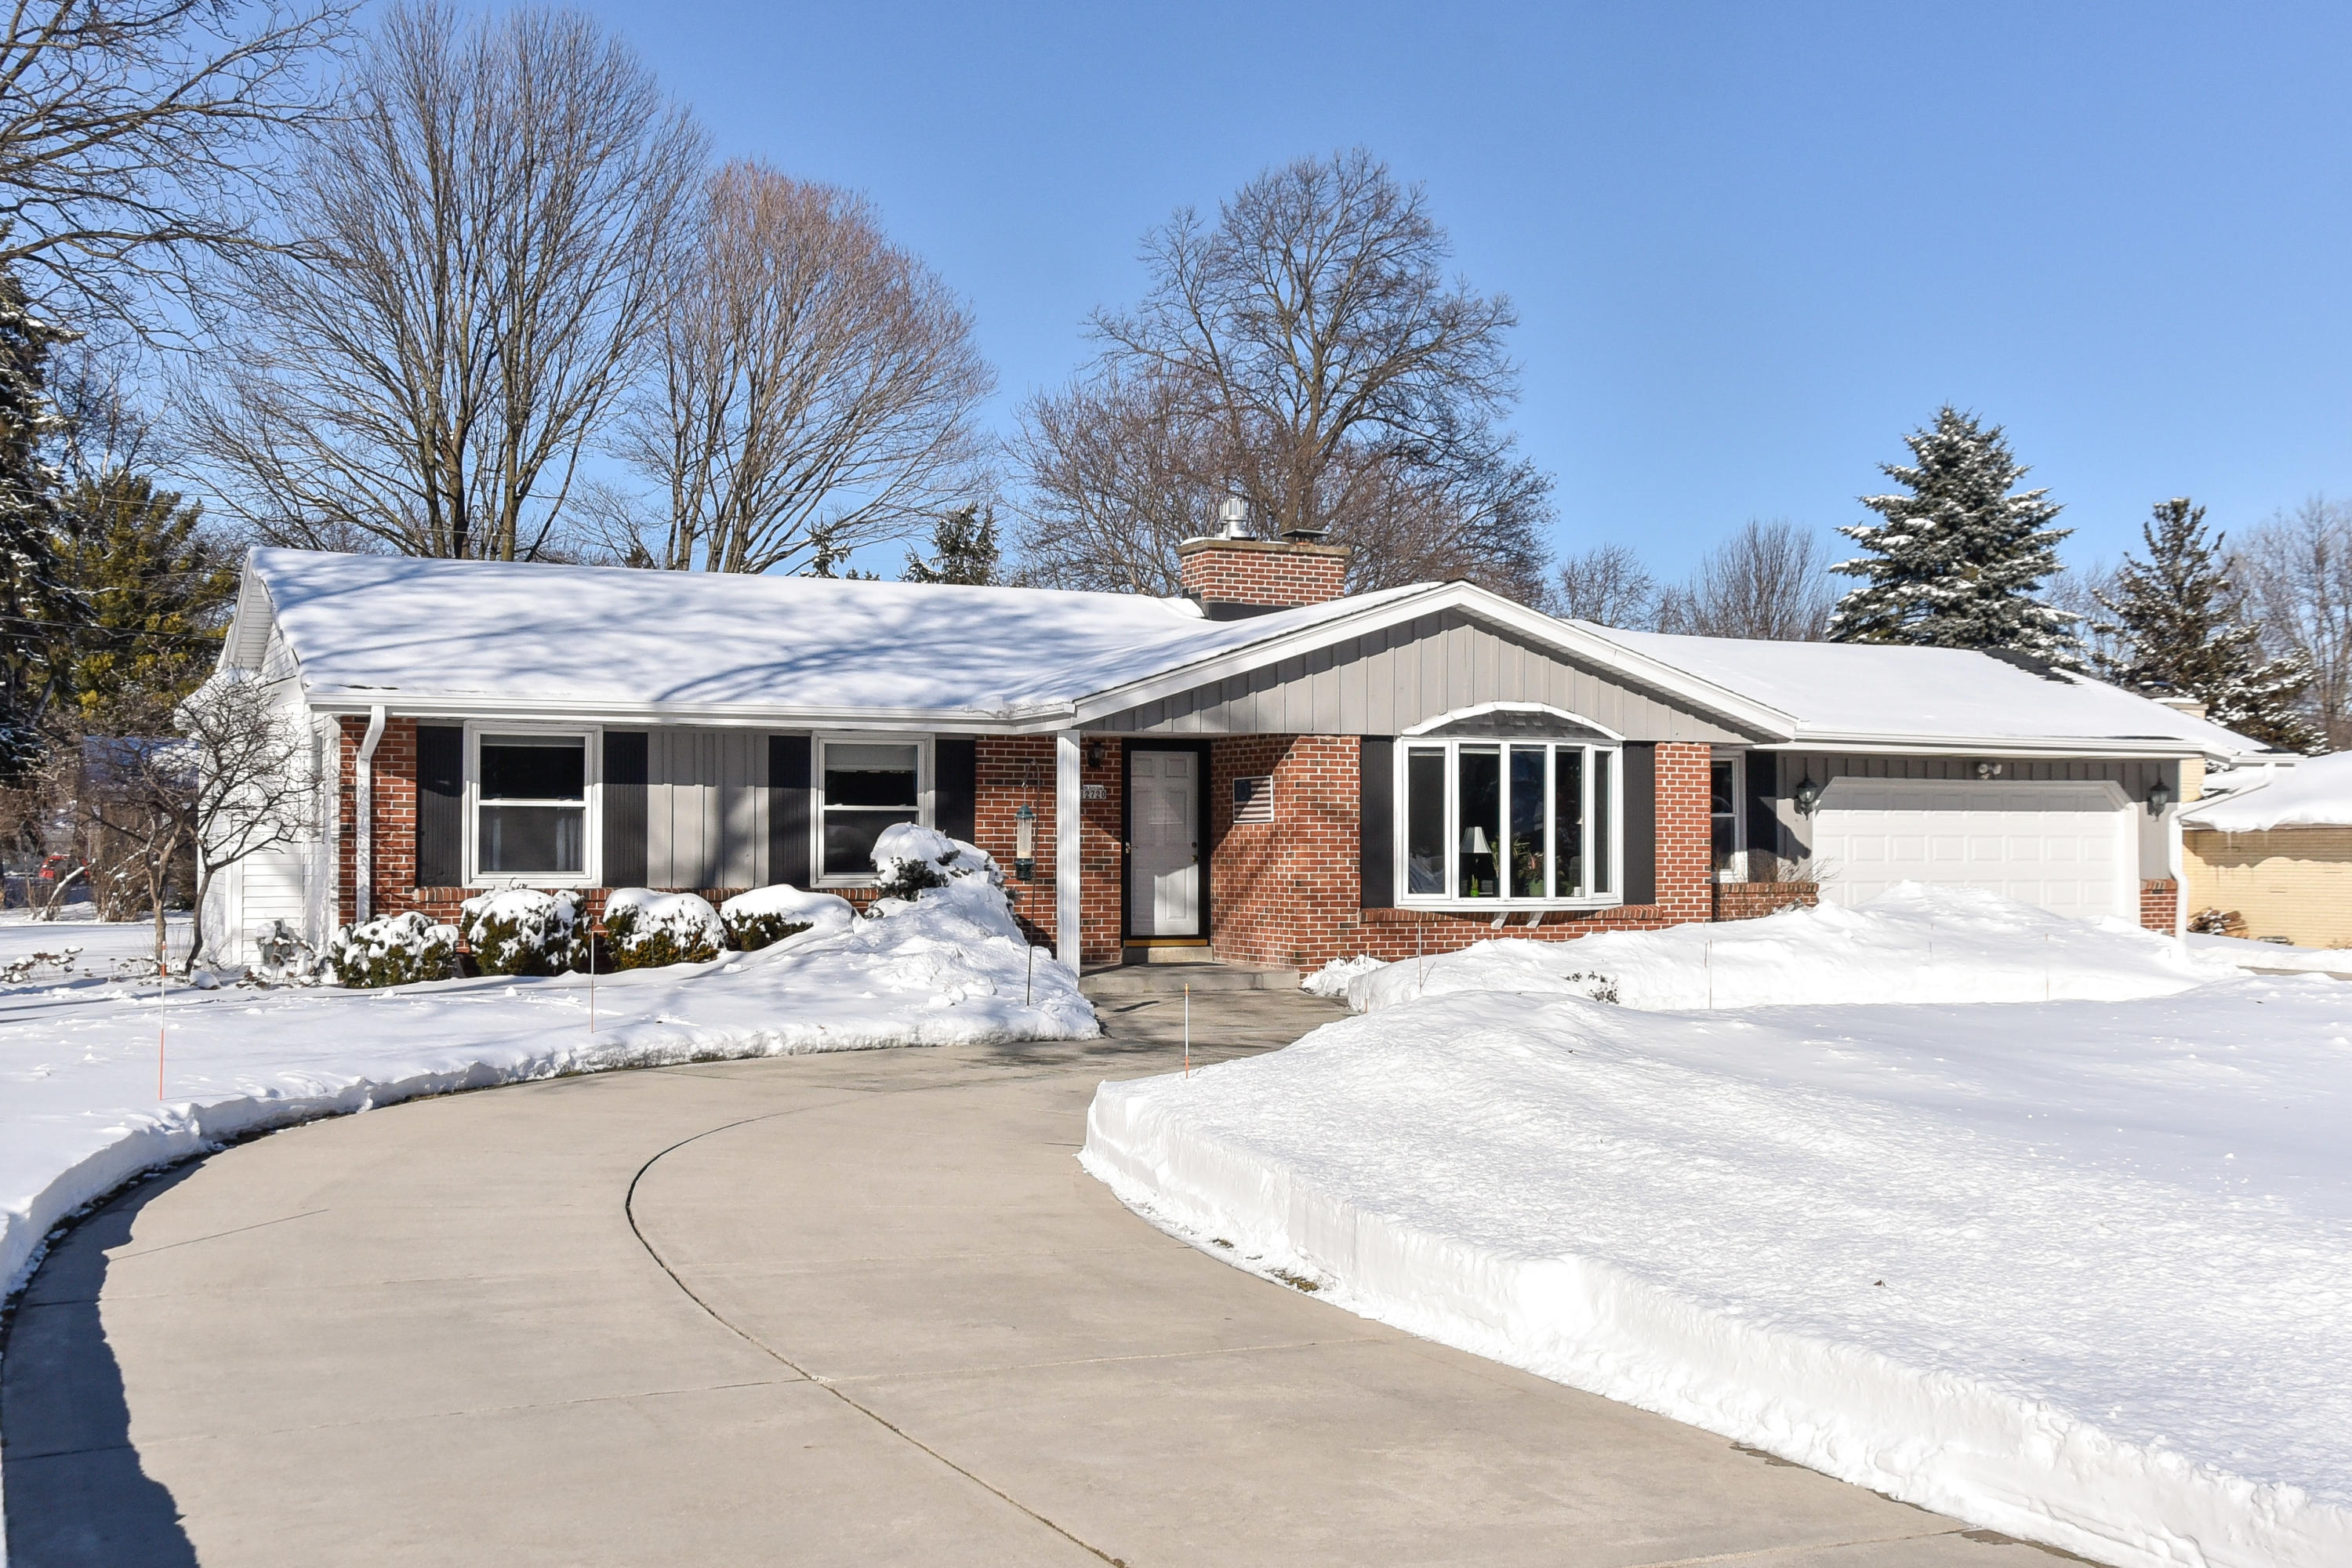 12720 Robinwood St, Brookfield, Wisconsin 53005, 3 Bedrooms Bedrooms, 8 Rooms Rooms,1 BathroomBathrooms,Single-Family,For Sale,Robinwood St,1622817